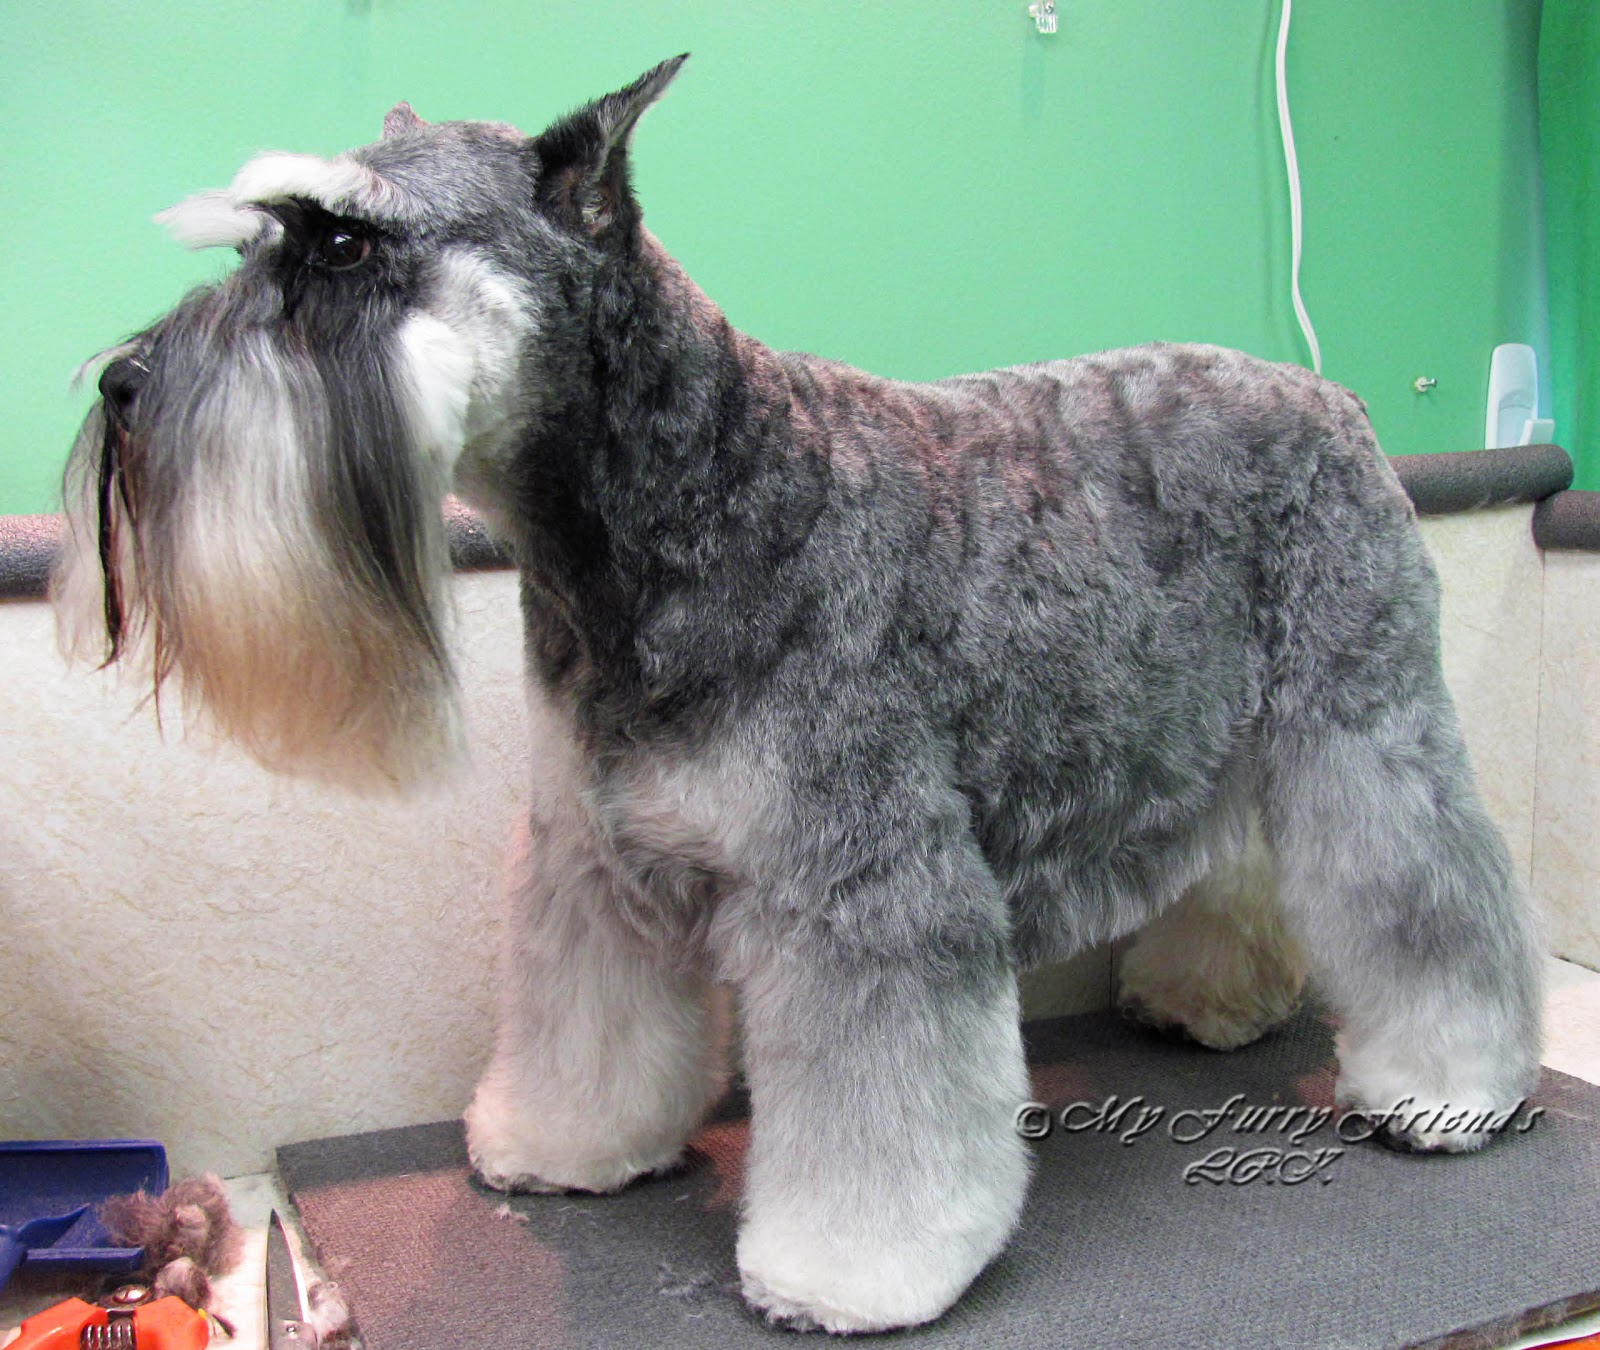 pet grooming: the good, the bad, & the furry: different